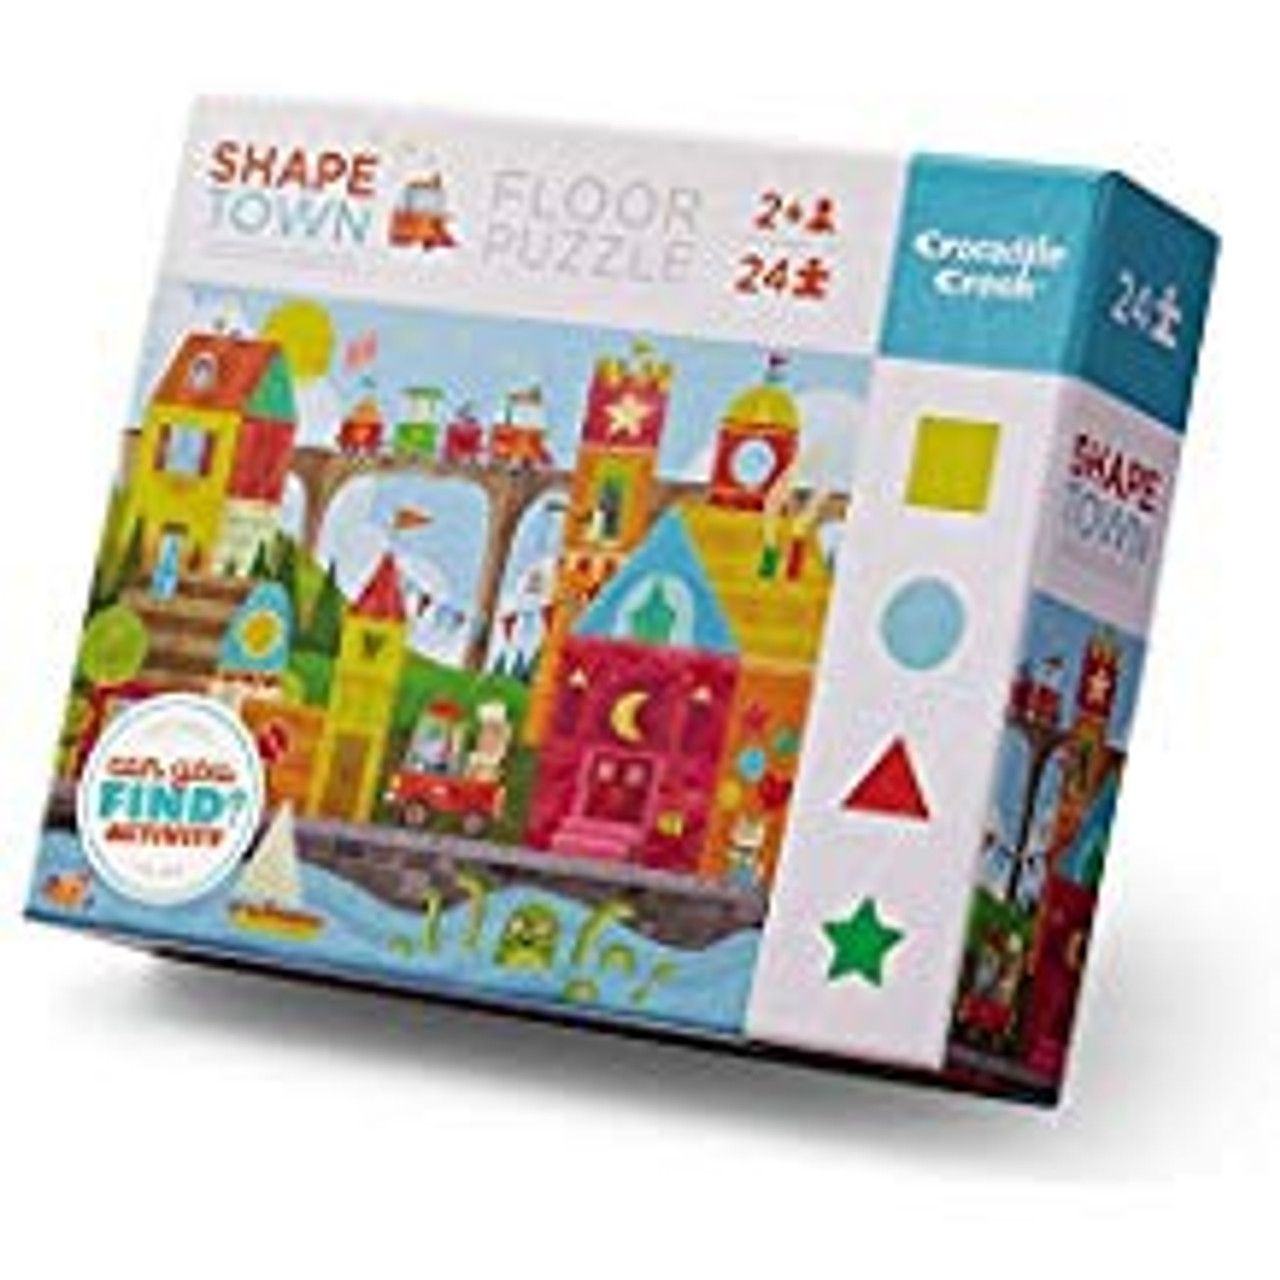 EARLY LEARNING PUZZLE SHAPE TOWN 24 PCS